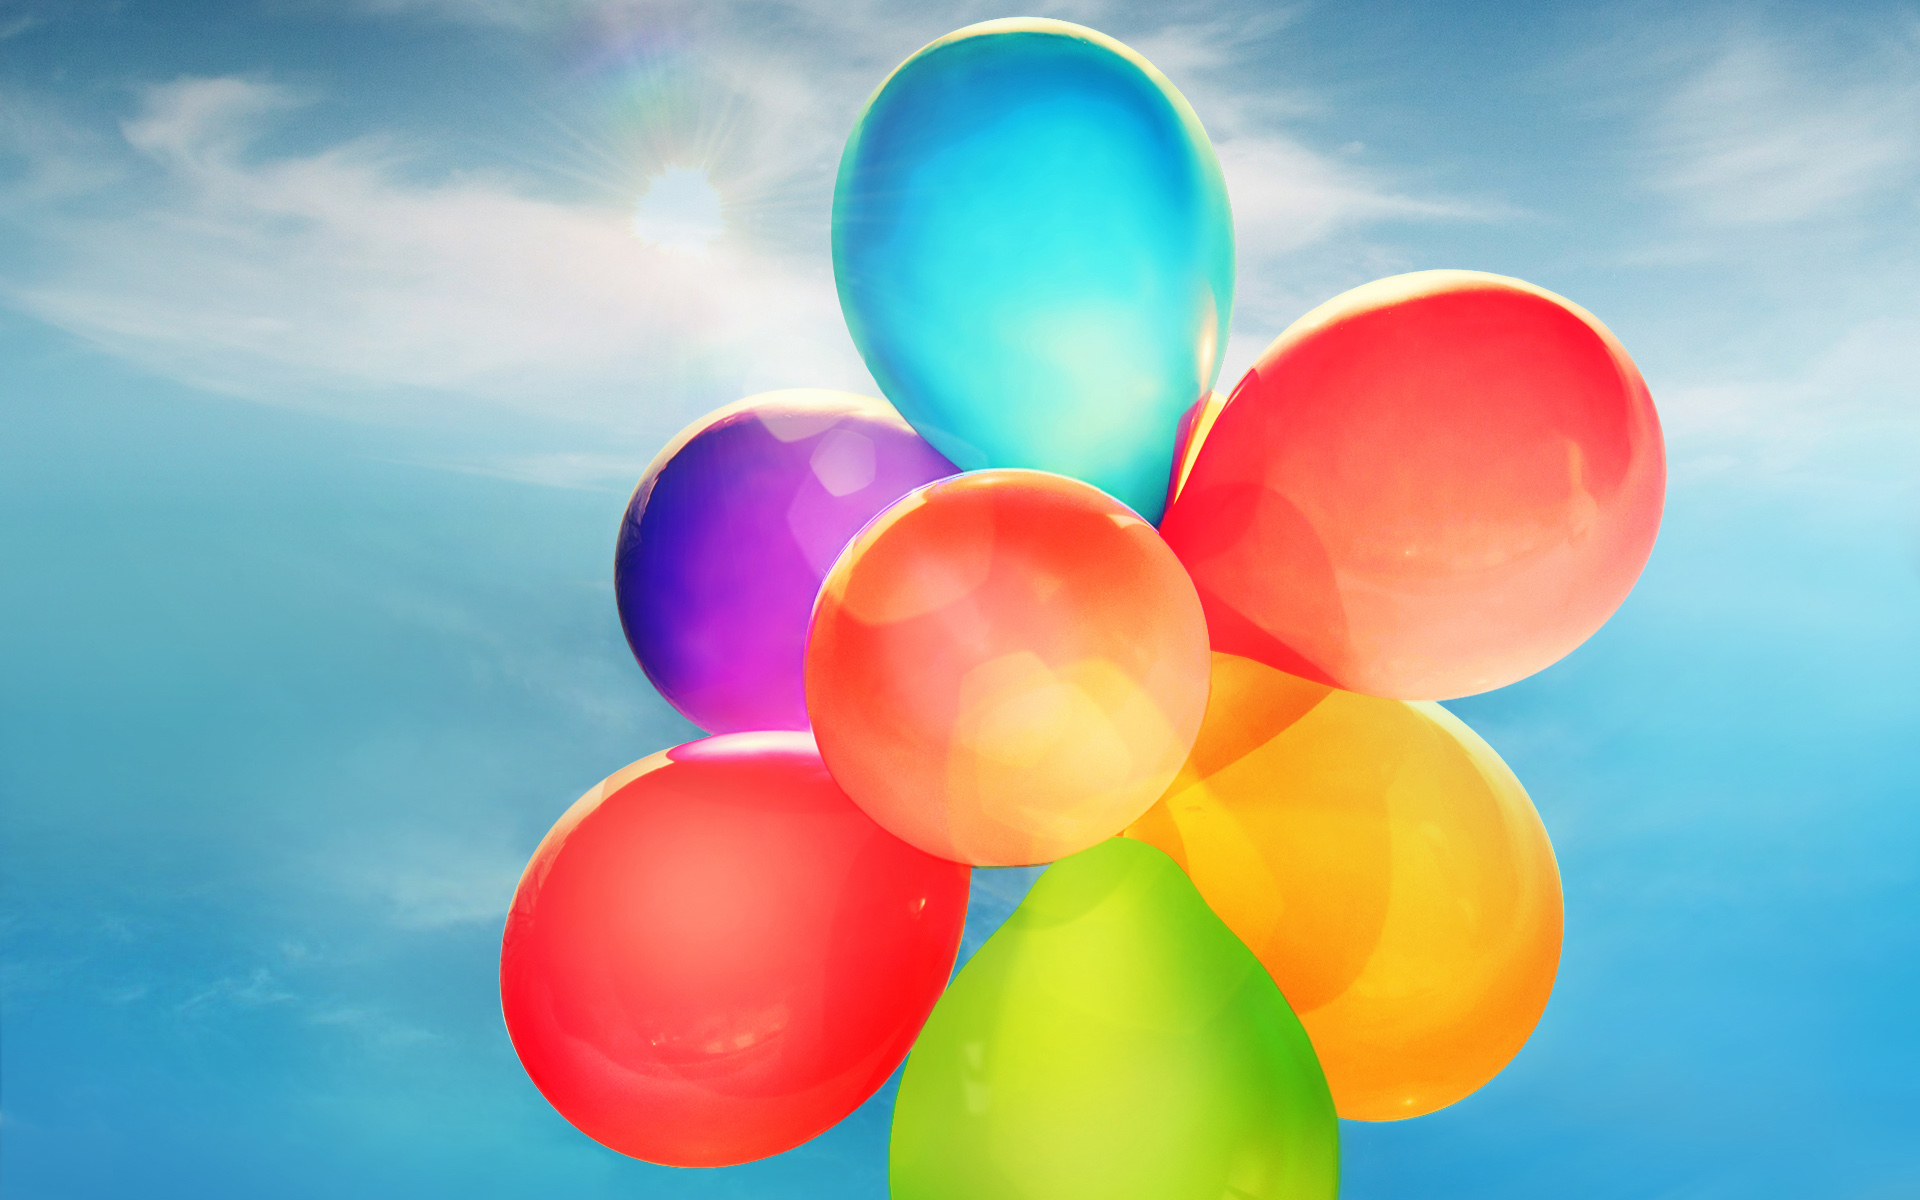 Colorful Balloons Wallpapers